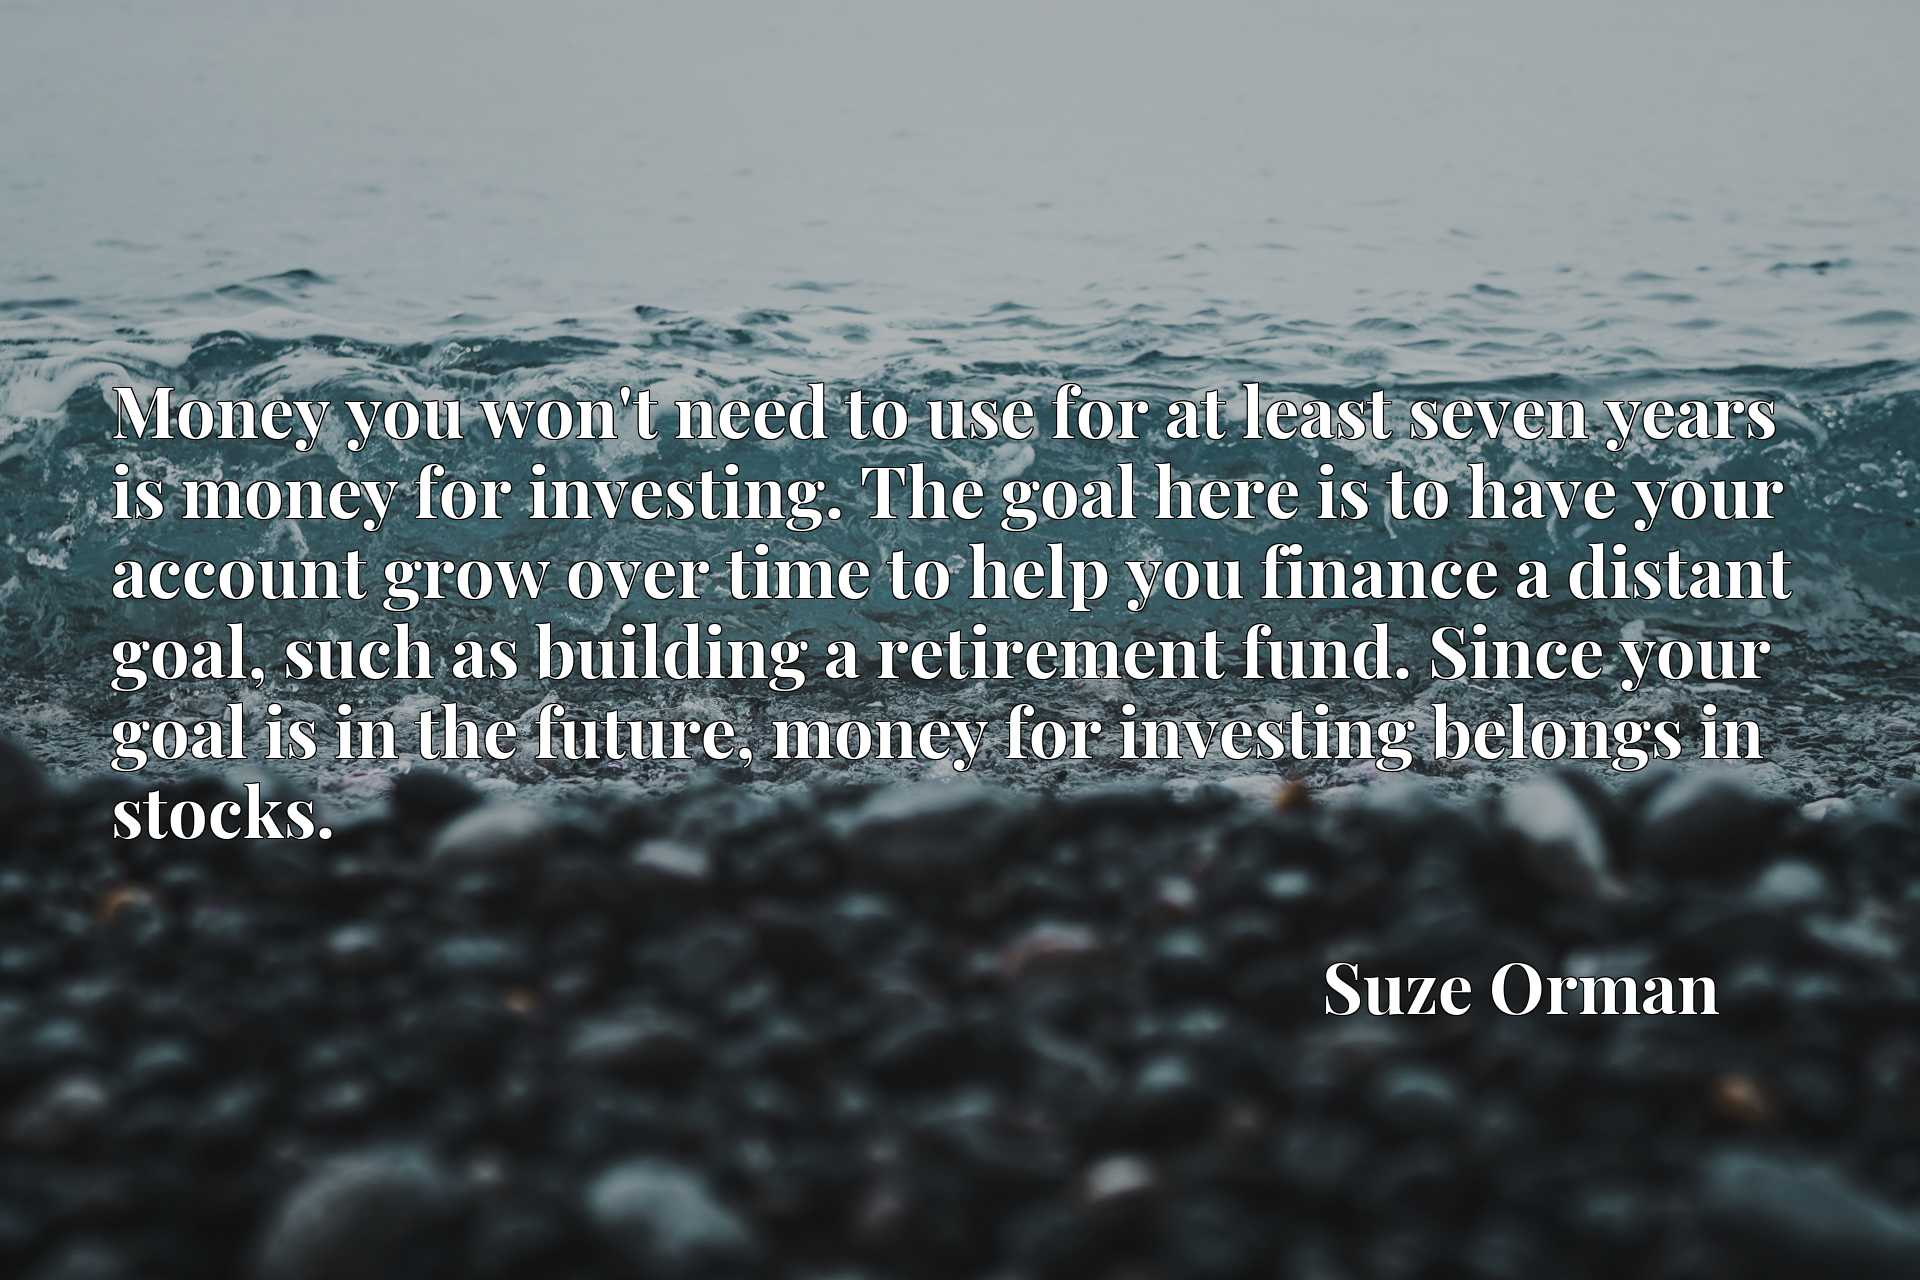 Money you won't need to use for at least seven years is money for investing. The goal here is to have your account grow over time to help you finance a distant goal, such as building a retirement fund. Since your goal is in the future, money for investing belongs in stocks.